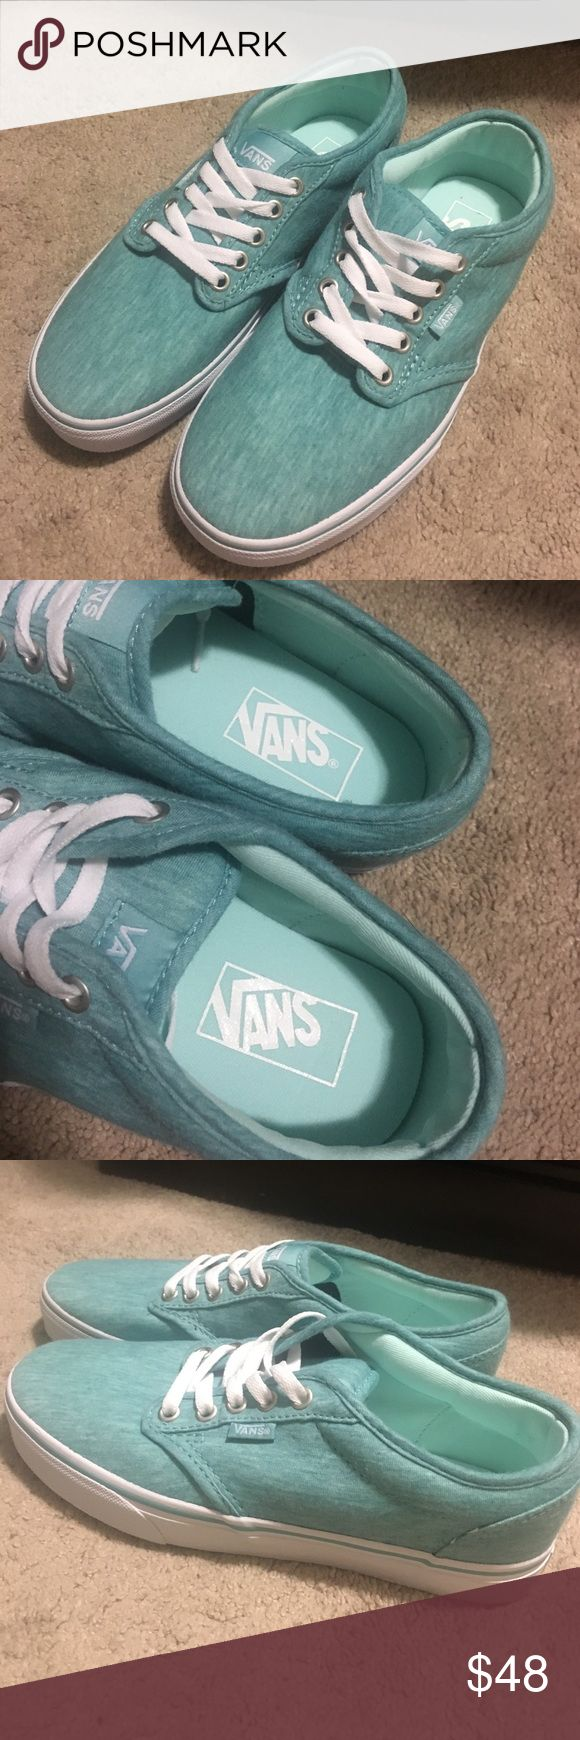 Brand new Vans Brand new, never worn. Tiffany blue color Vans Shoes Sneakers